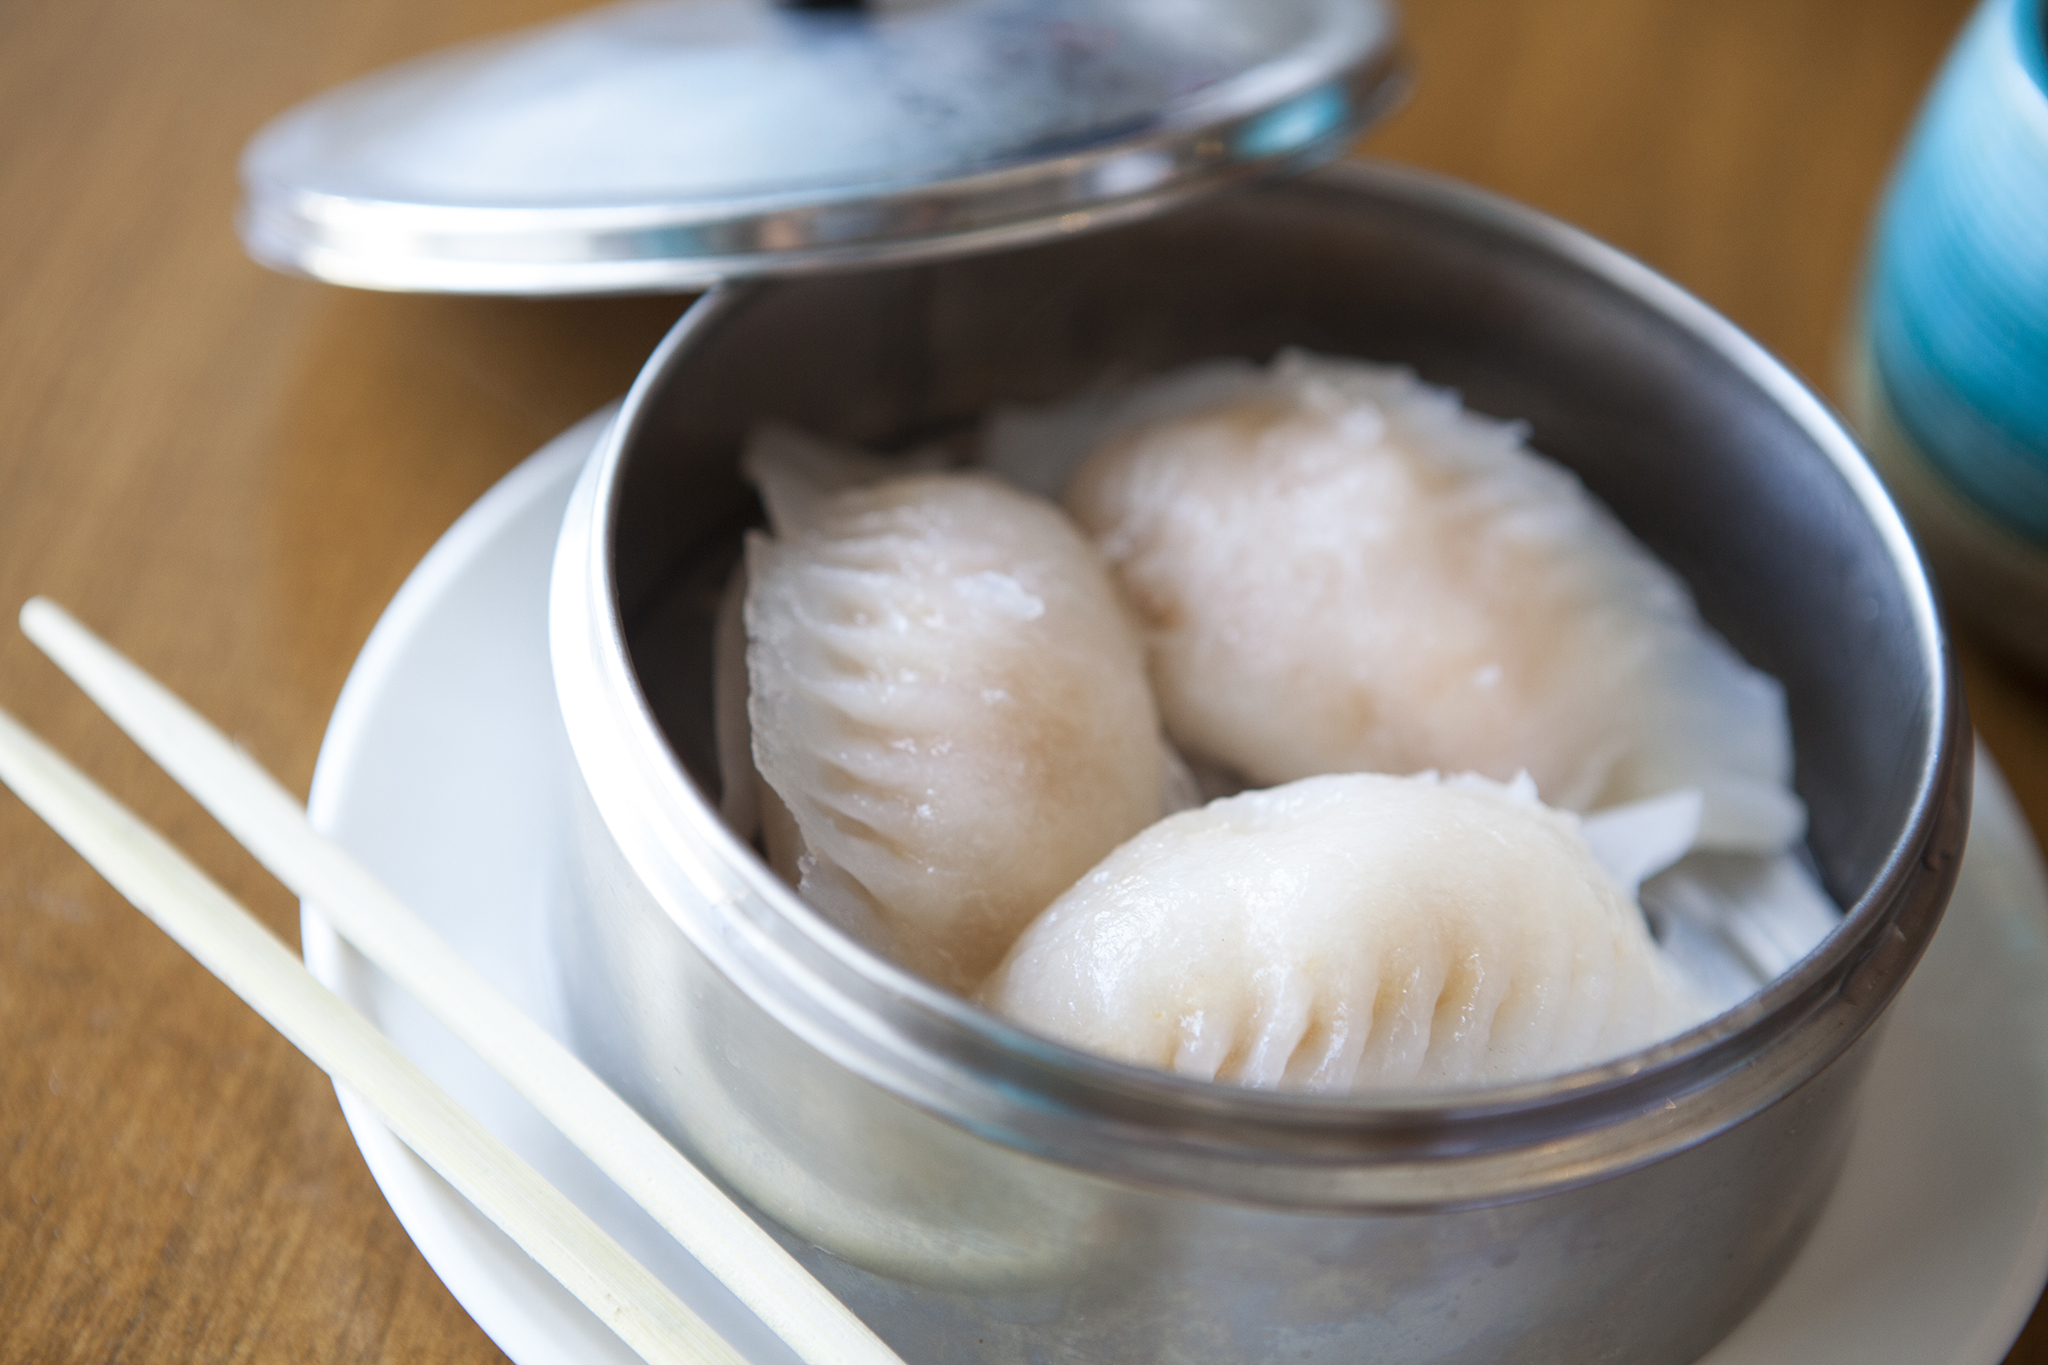 Crystal shrimp dumplings at Pingtung